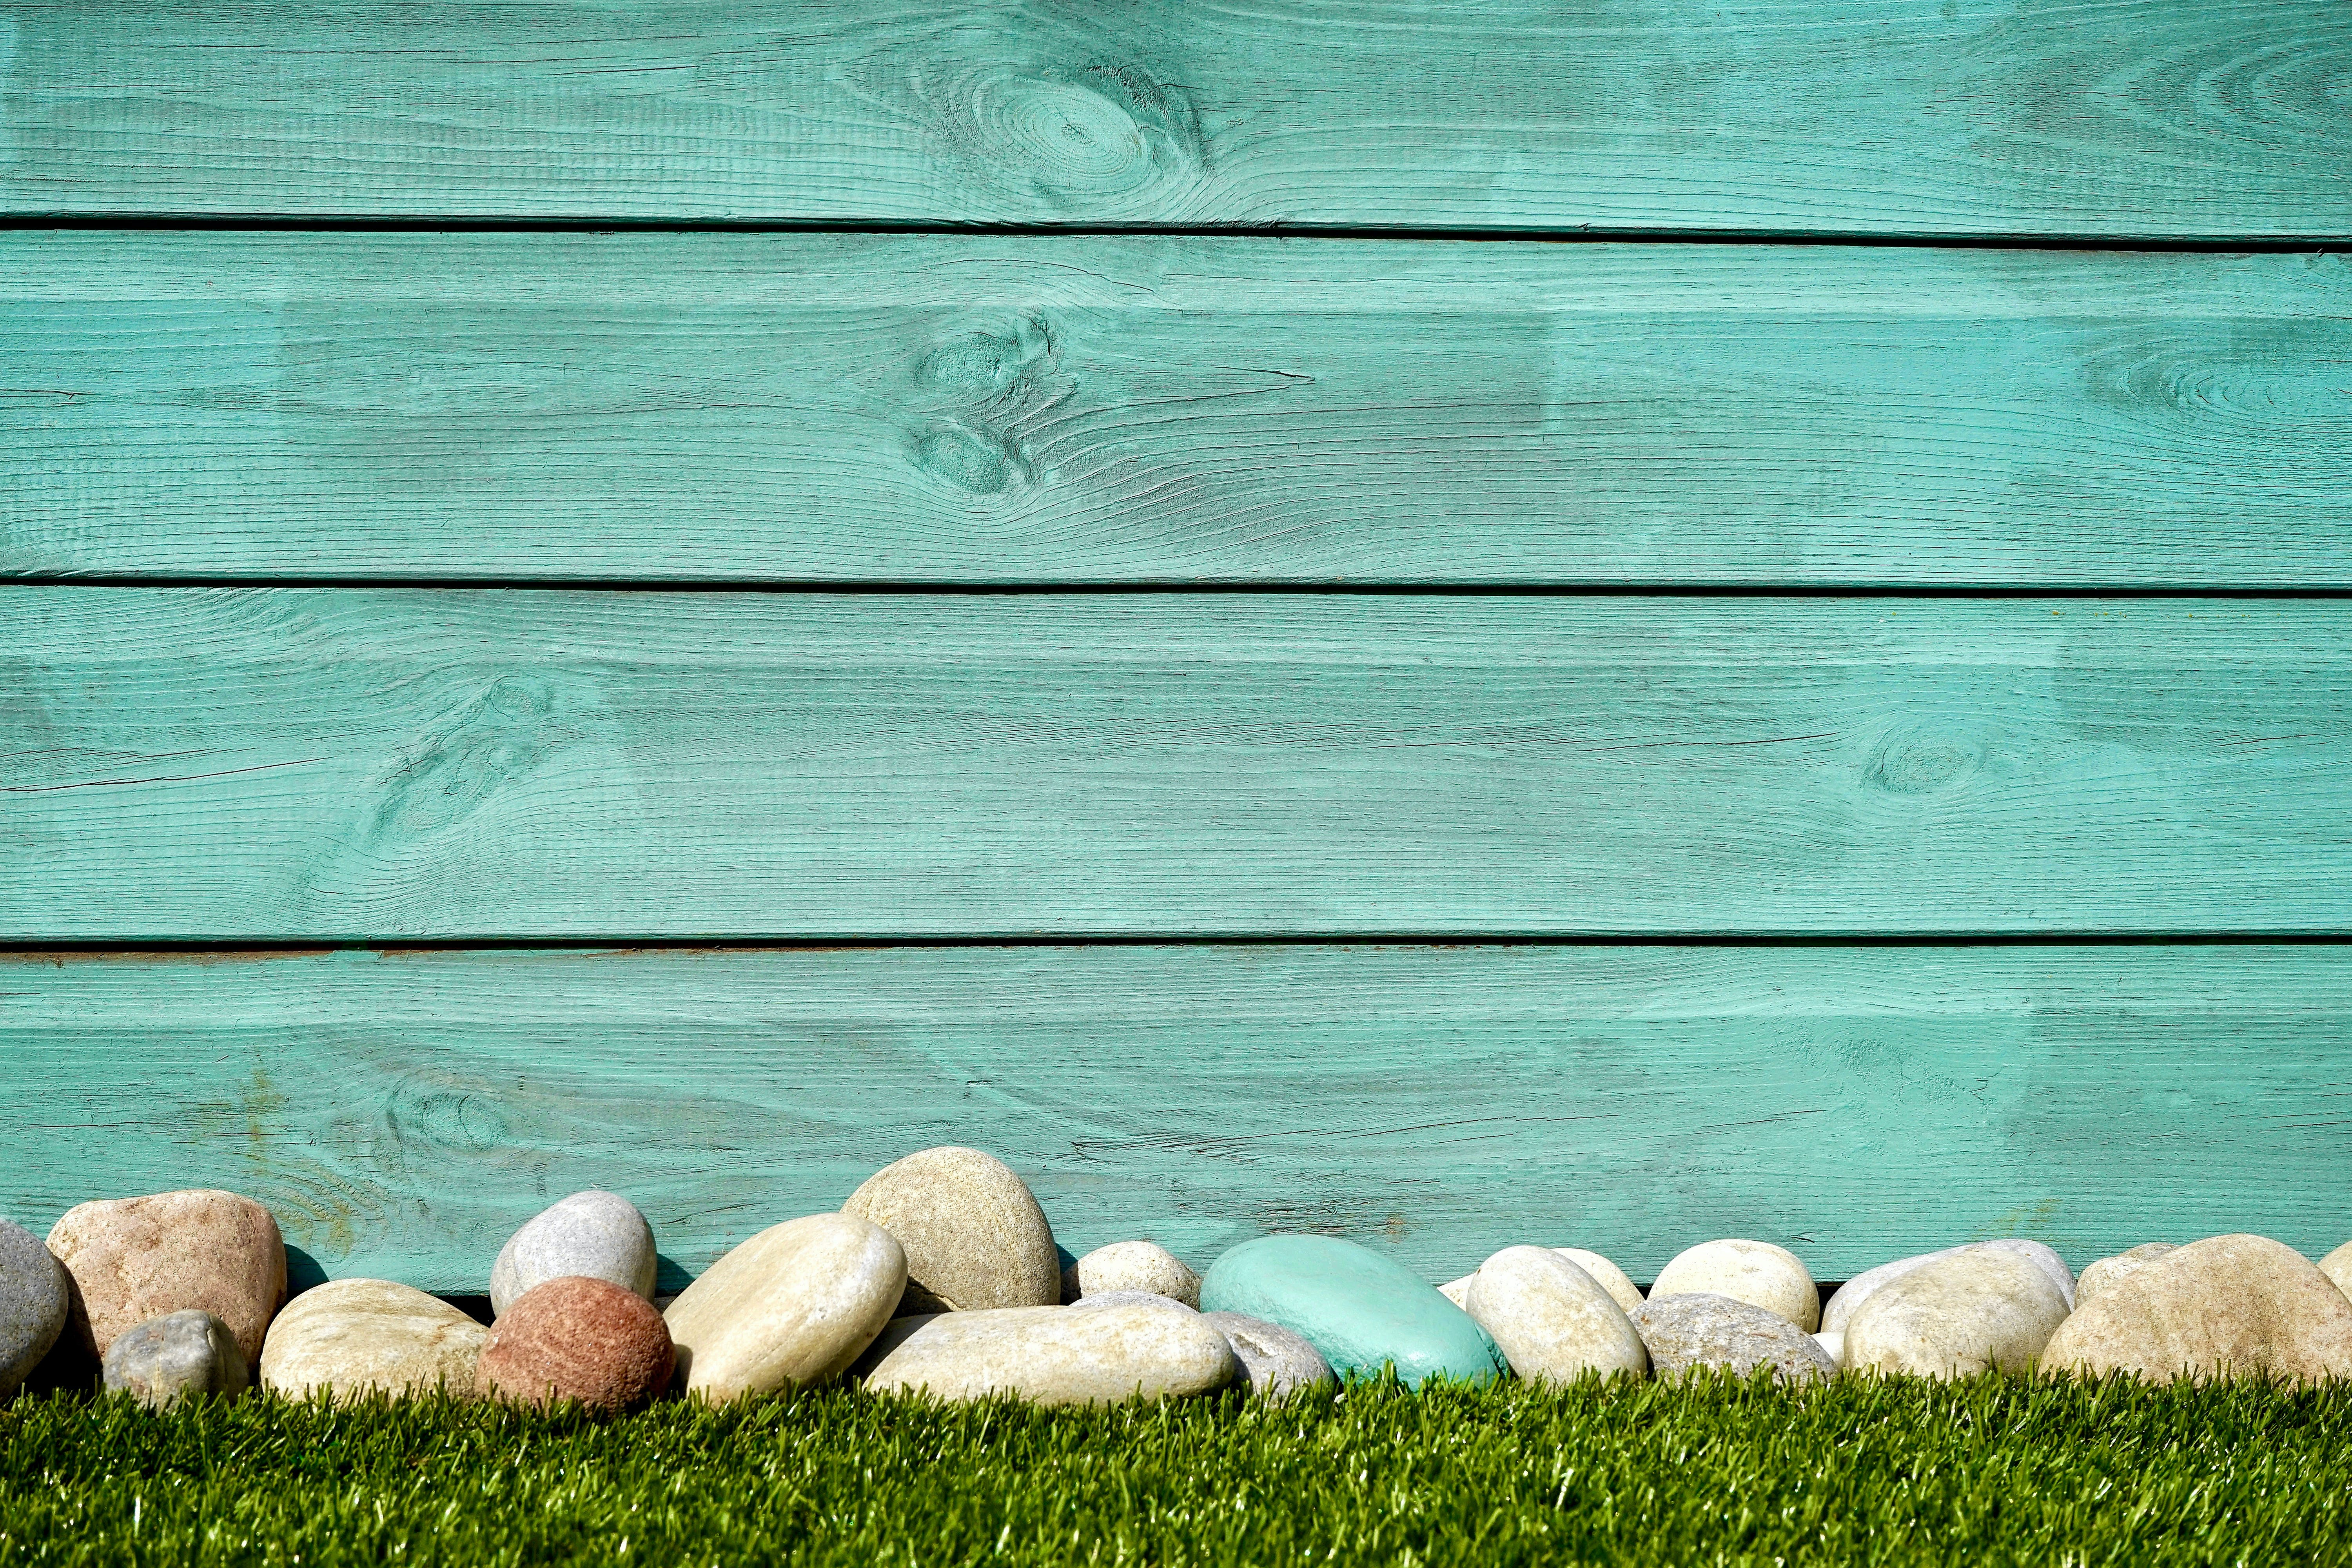 Pile of White and Blue Stones in Front Blue Painted Wall